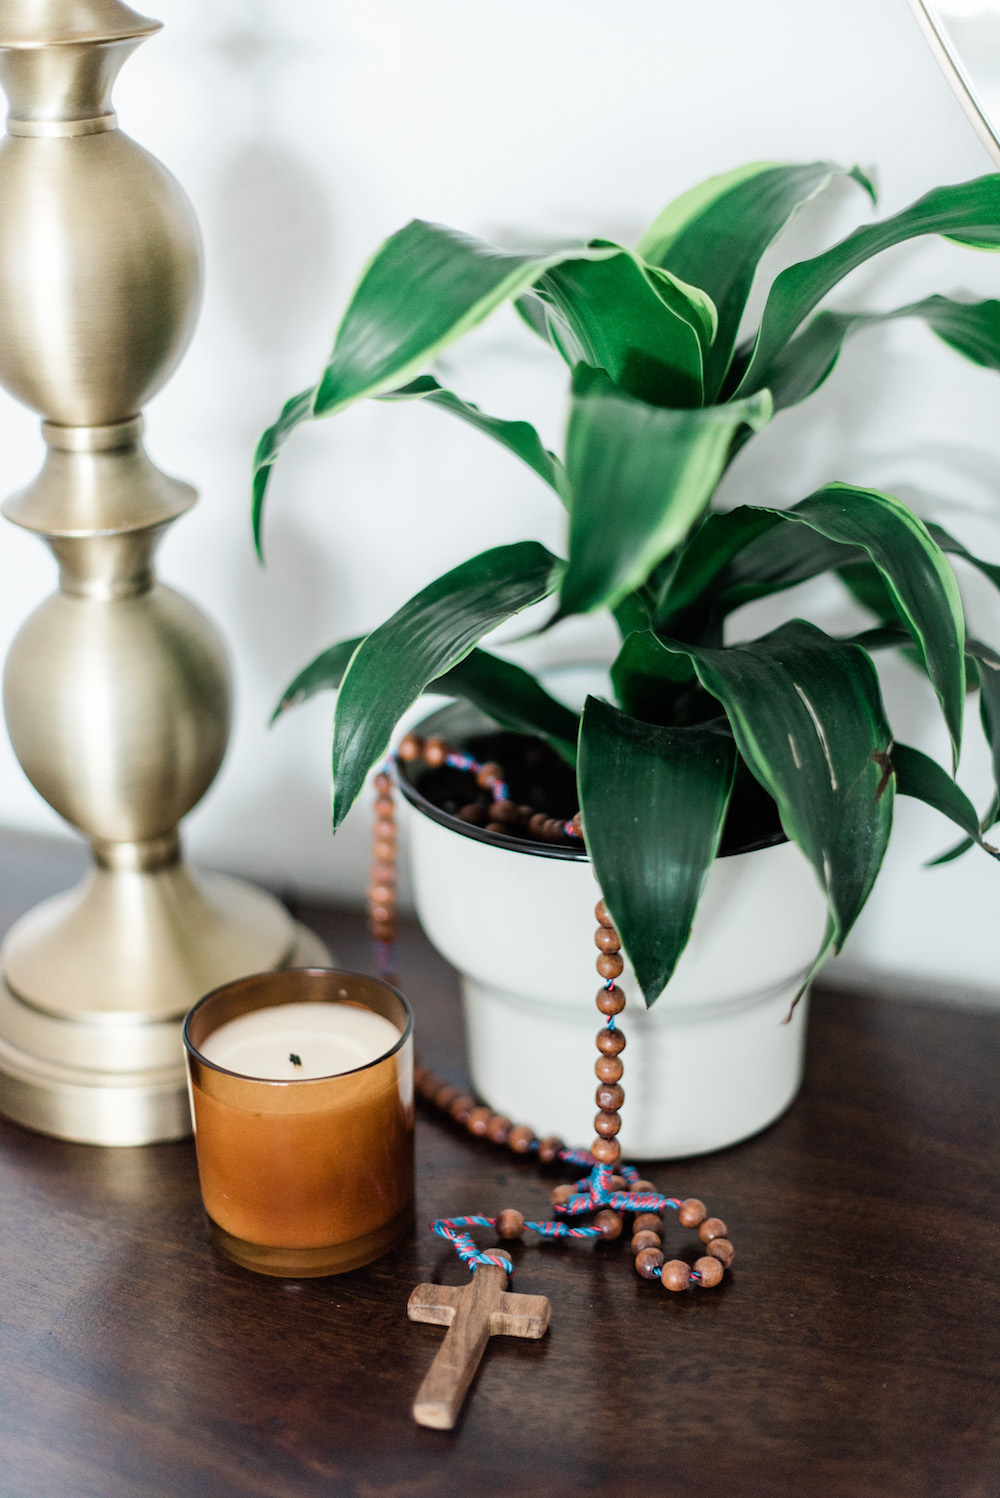 Low maintenance house plants, low maintenance plants, house plants 101, the best house plants, house plants you can't kill, how to grow house plants, top house plants, zz plant, snake plant, Janet Craig, 7 low maintenance house plants, 7 low maintenance plants for your home, Texas blogger, Texas home decor, Texas fashion blogger, Jesse Coulter, Austin blogger, Georgetown blogger, round rock blogger, Ikea plants, Ikea planters